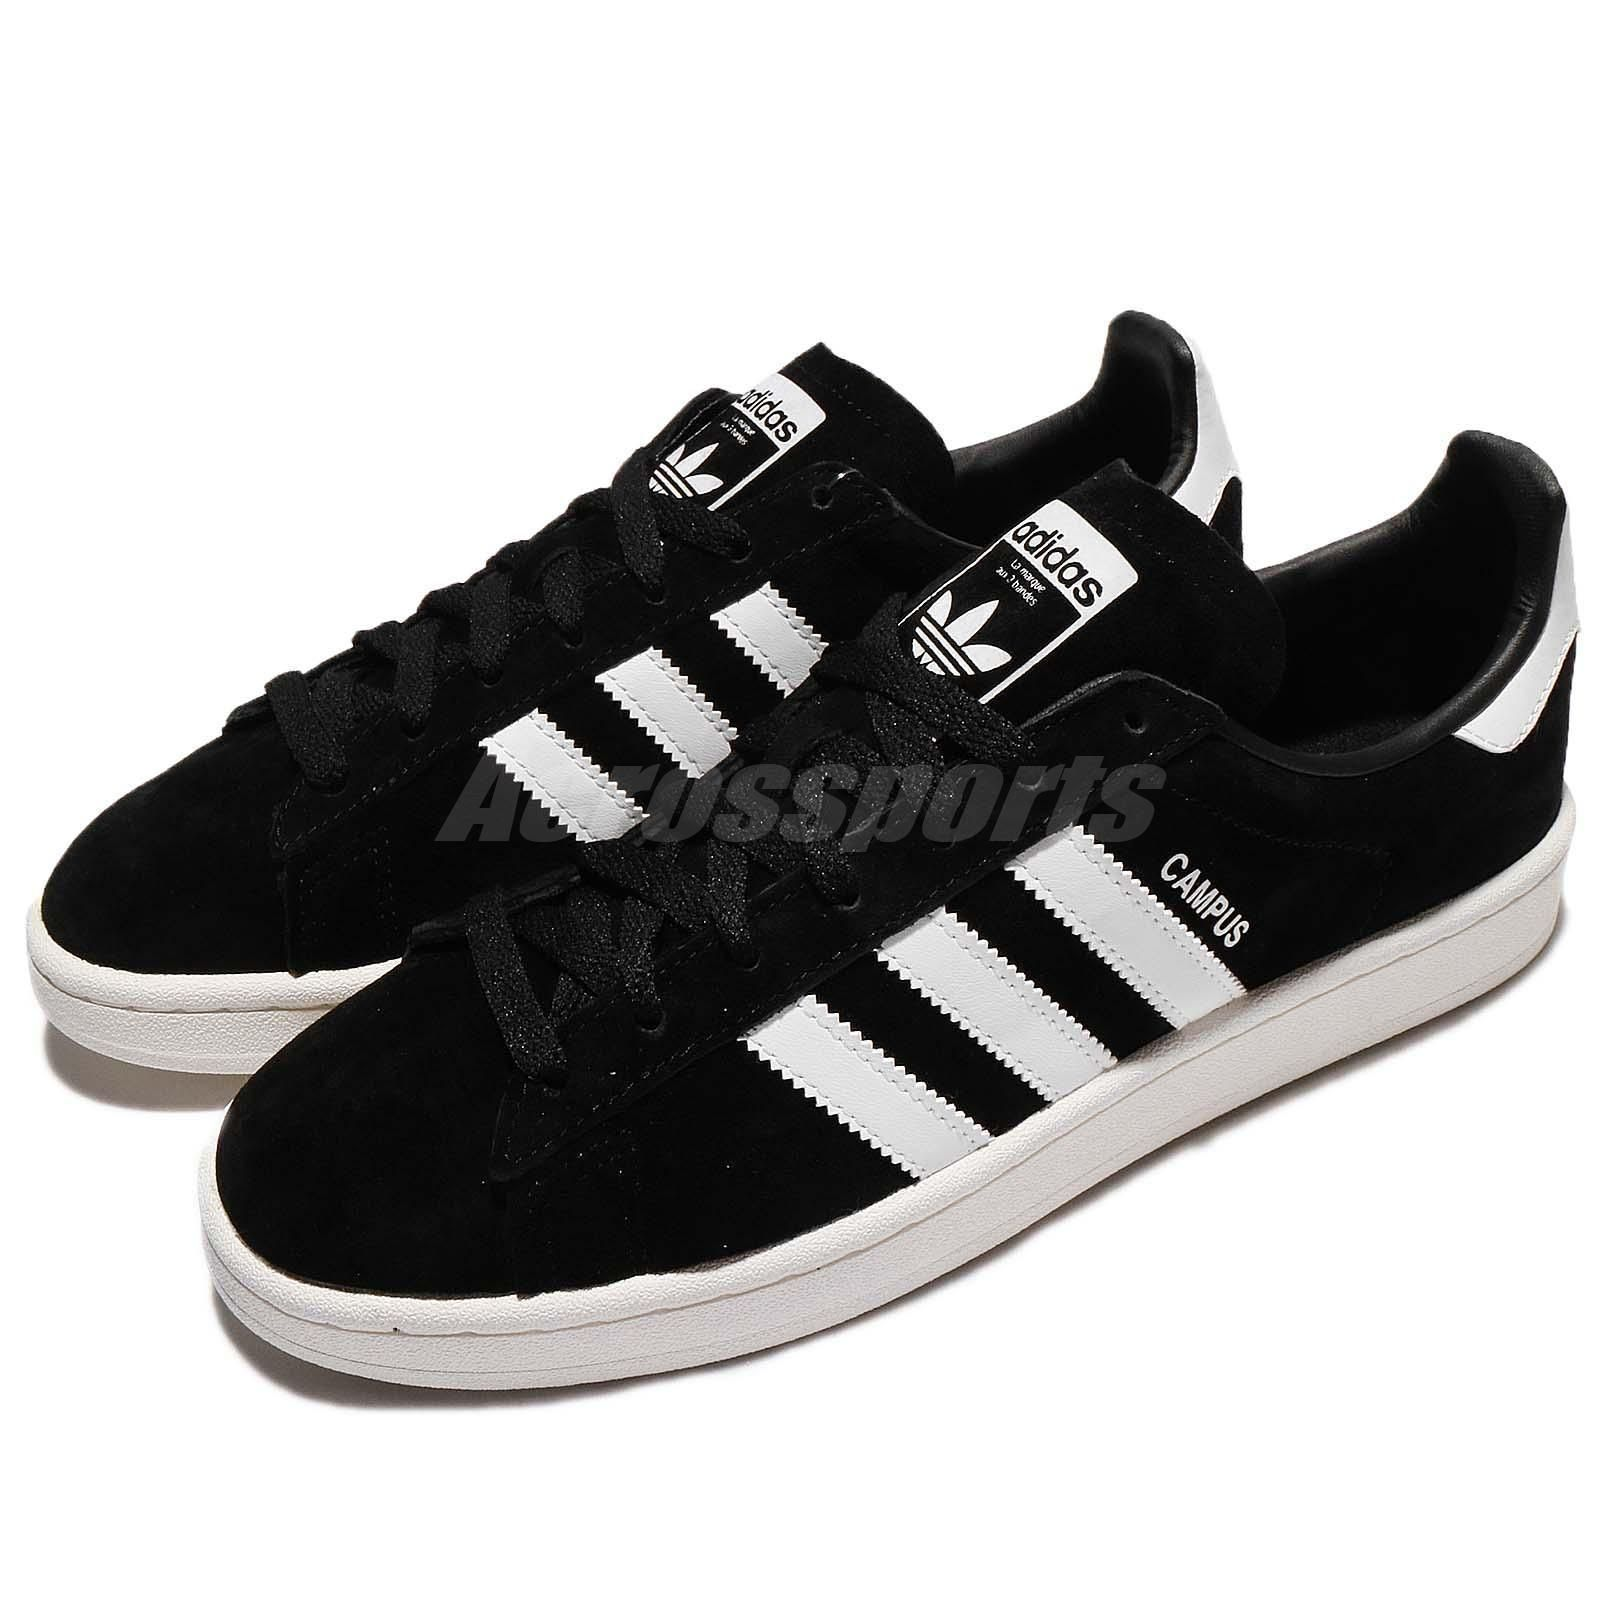 shoes, Adidas casual shoes, Sneakers